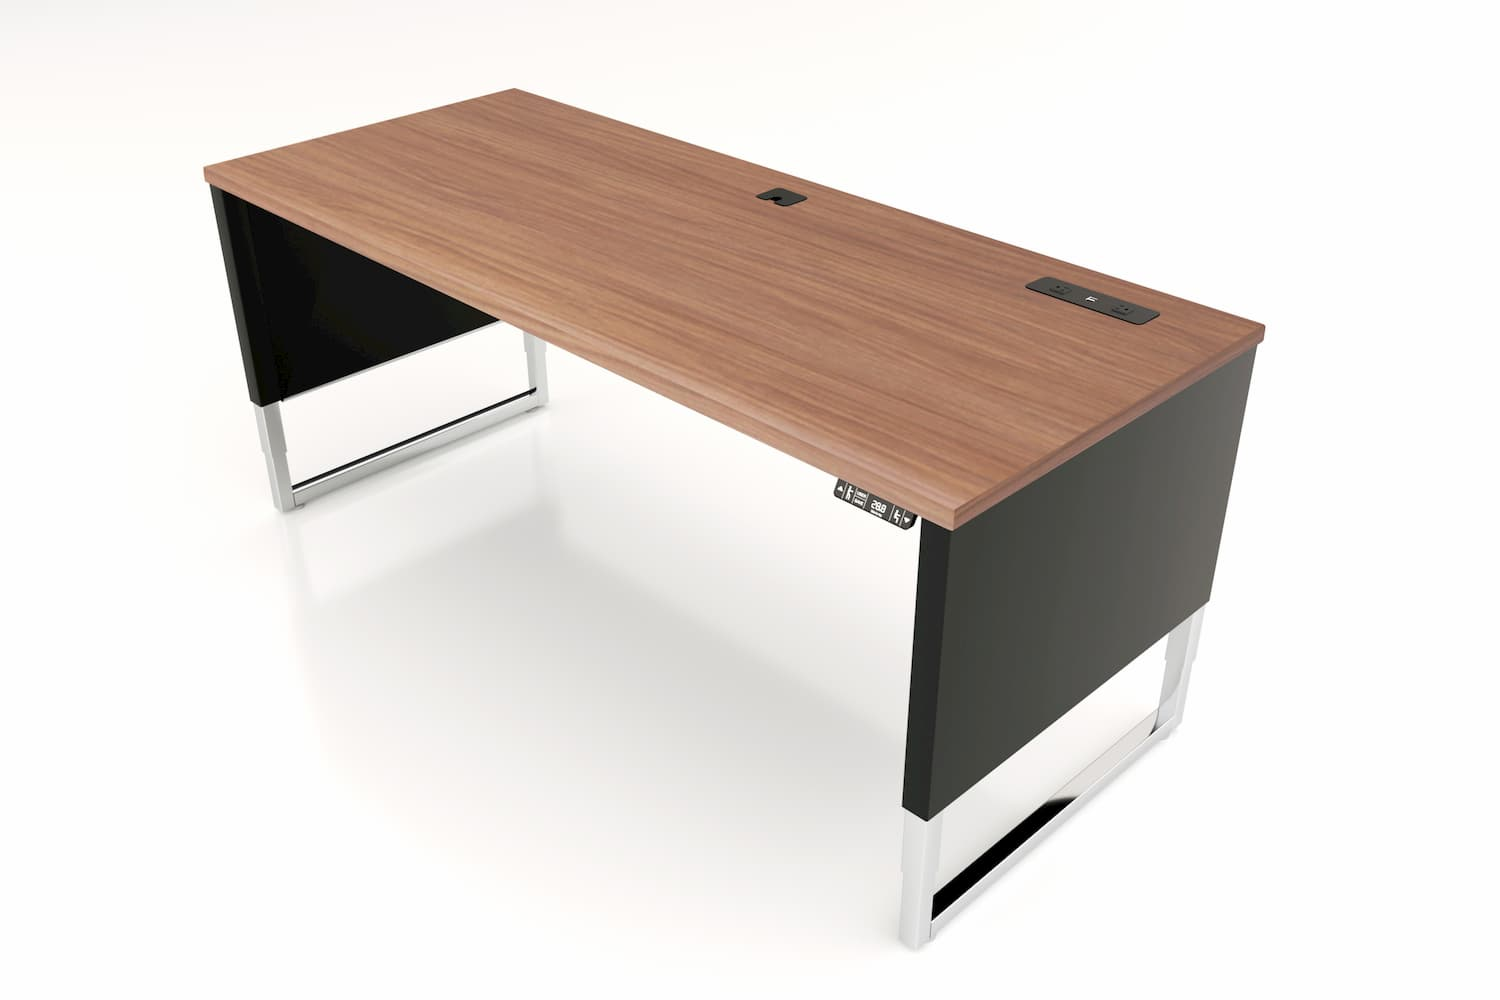 Advent-Desk-ADV-7230-BK-Custom-Top-14